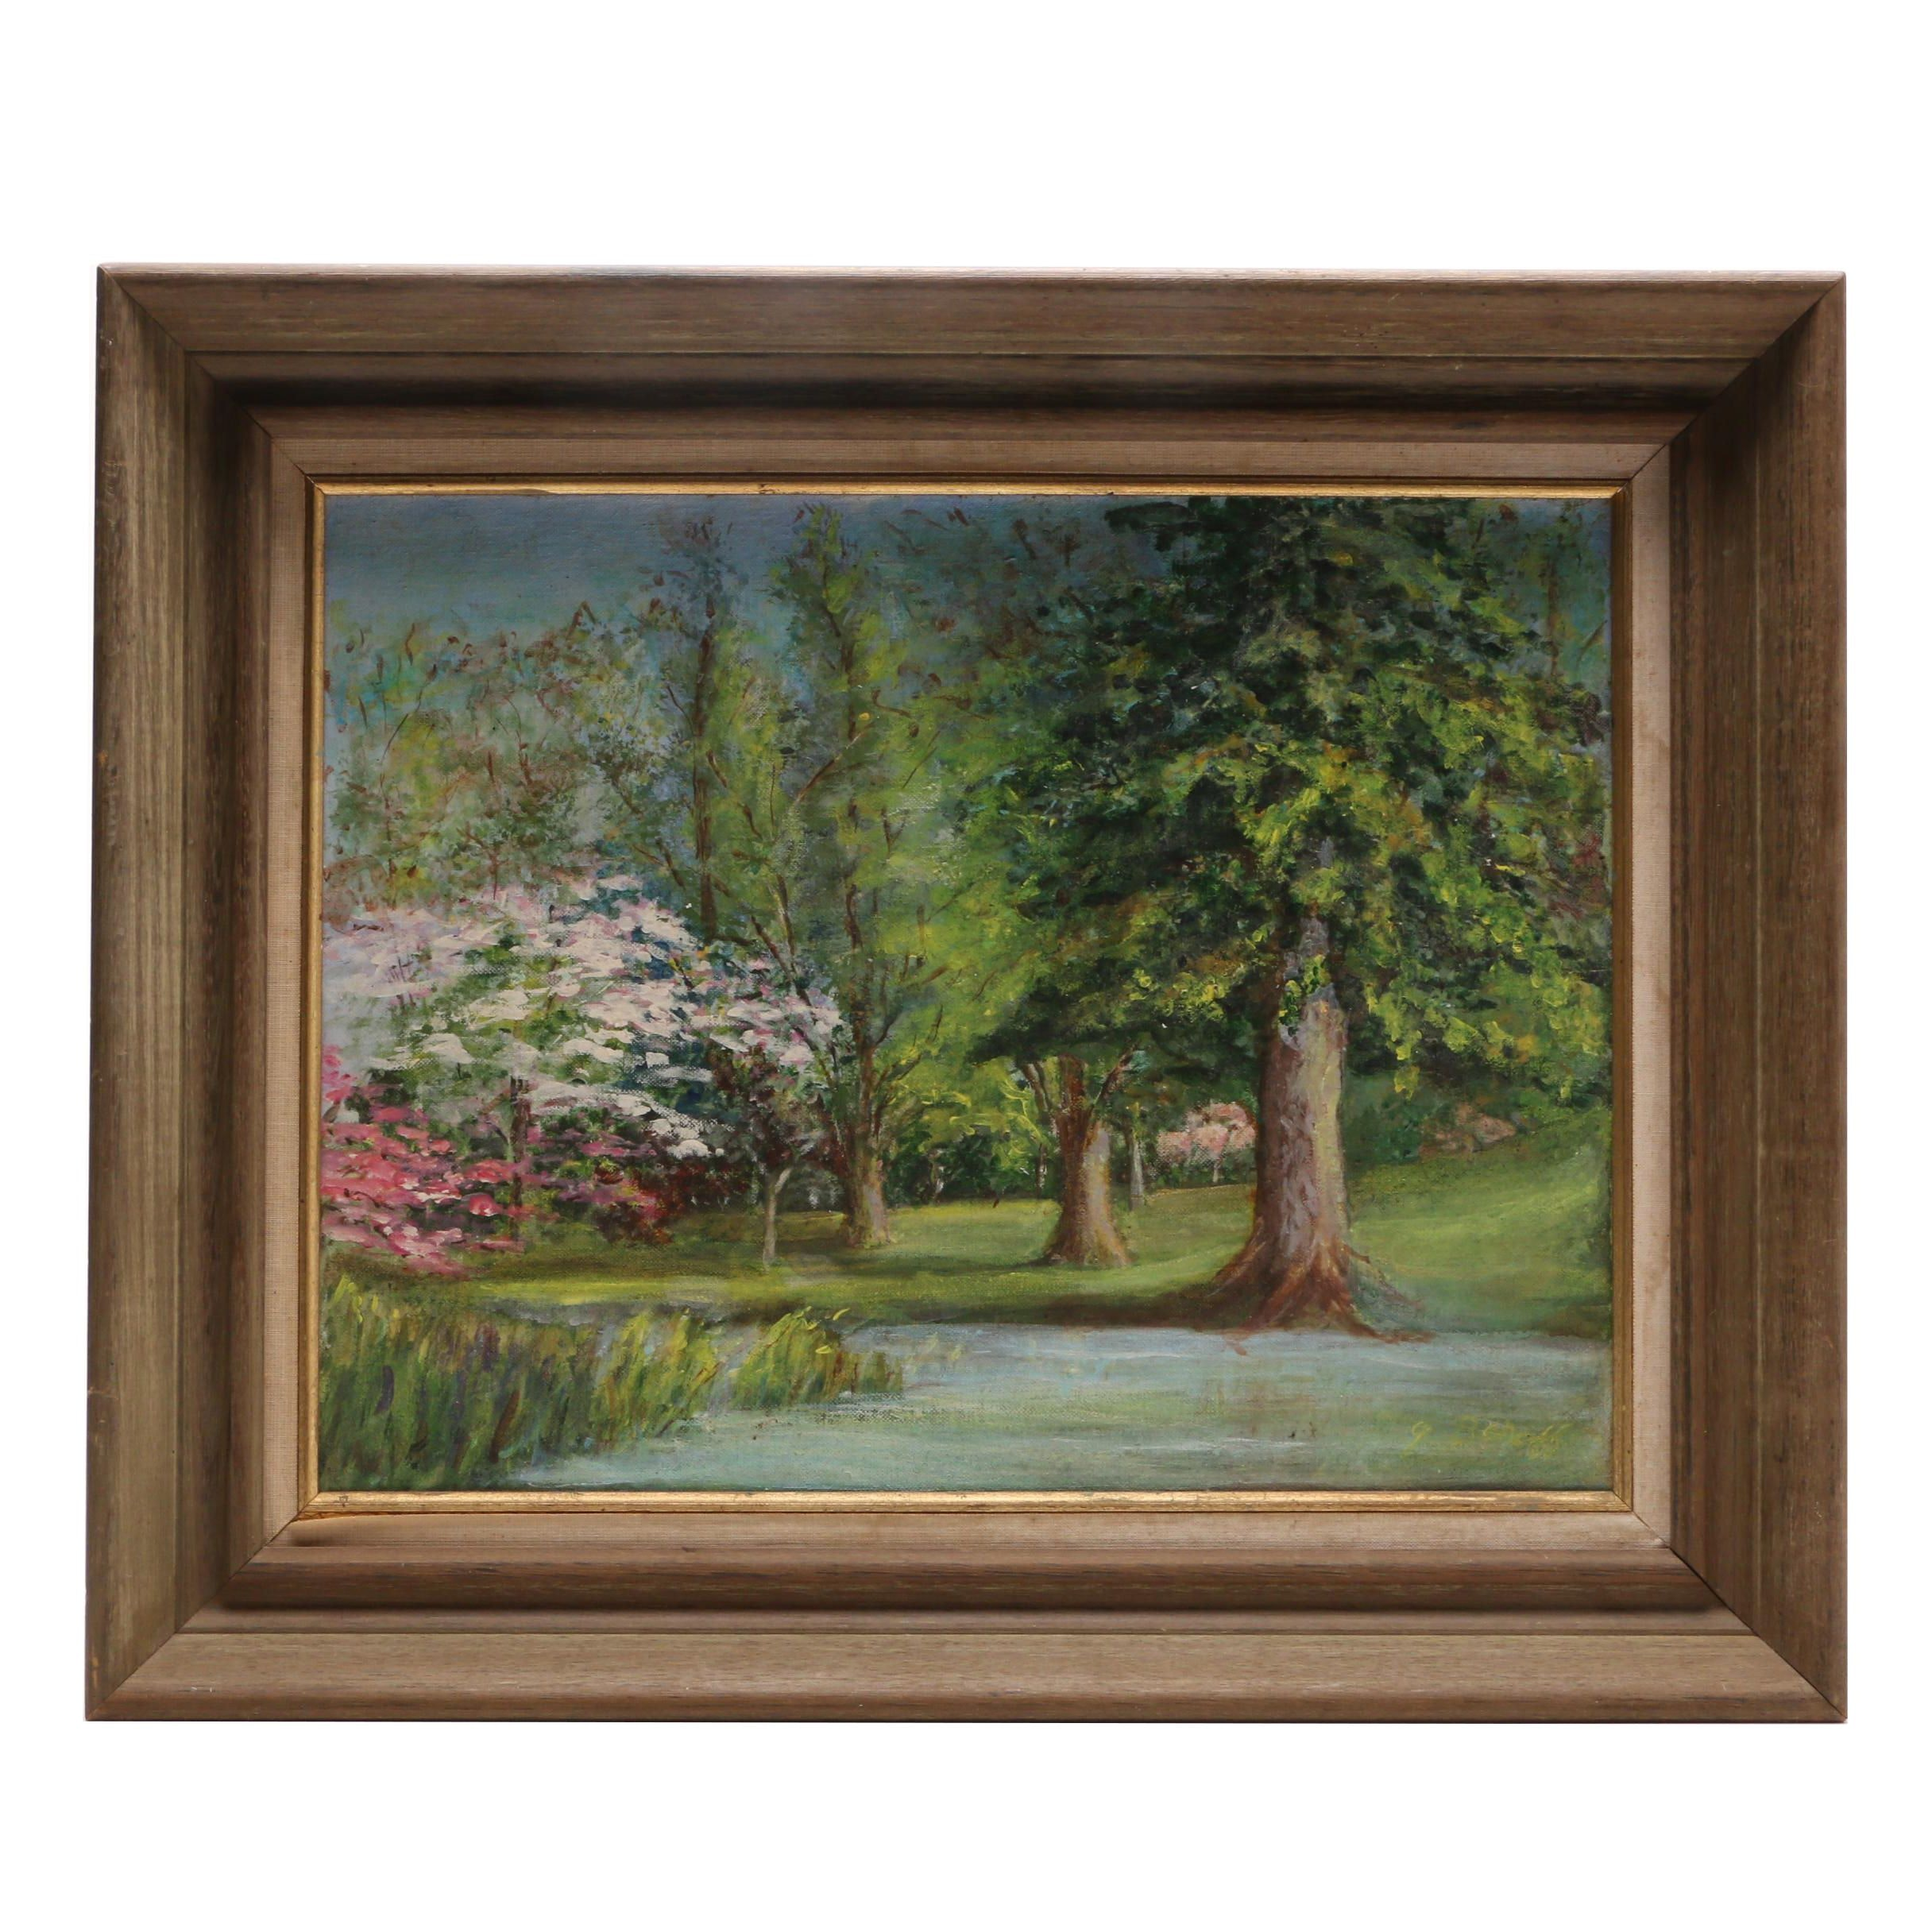 "Goldy Baraff 1973 Oil Landscape Painting ""Fort Hunt Park Spring"""